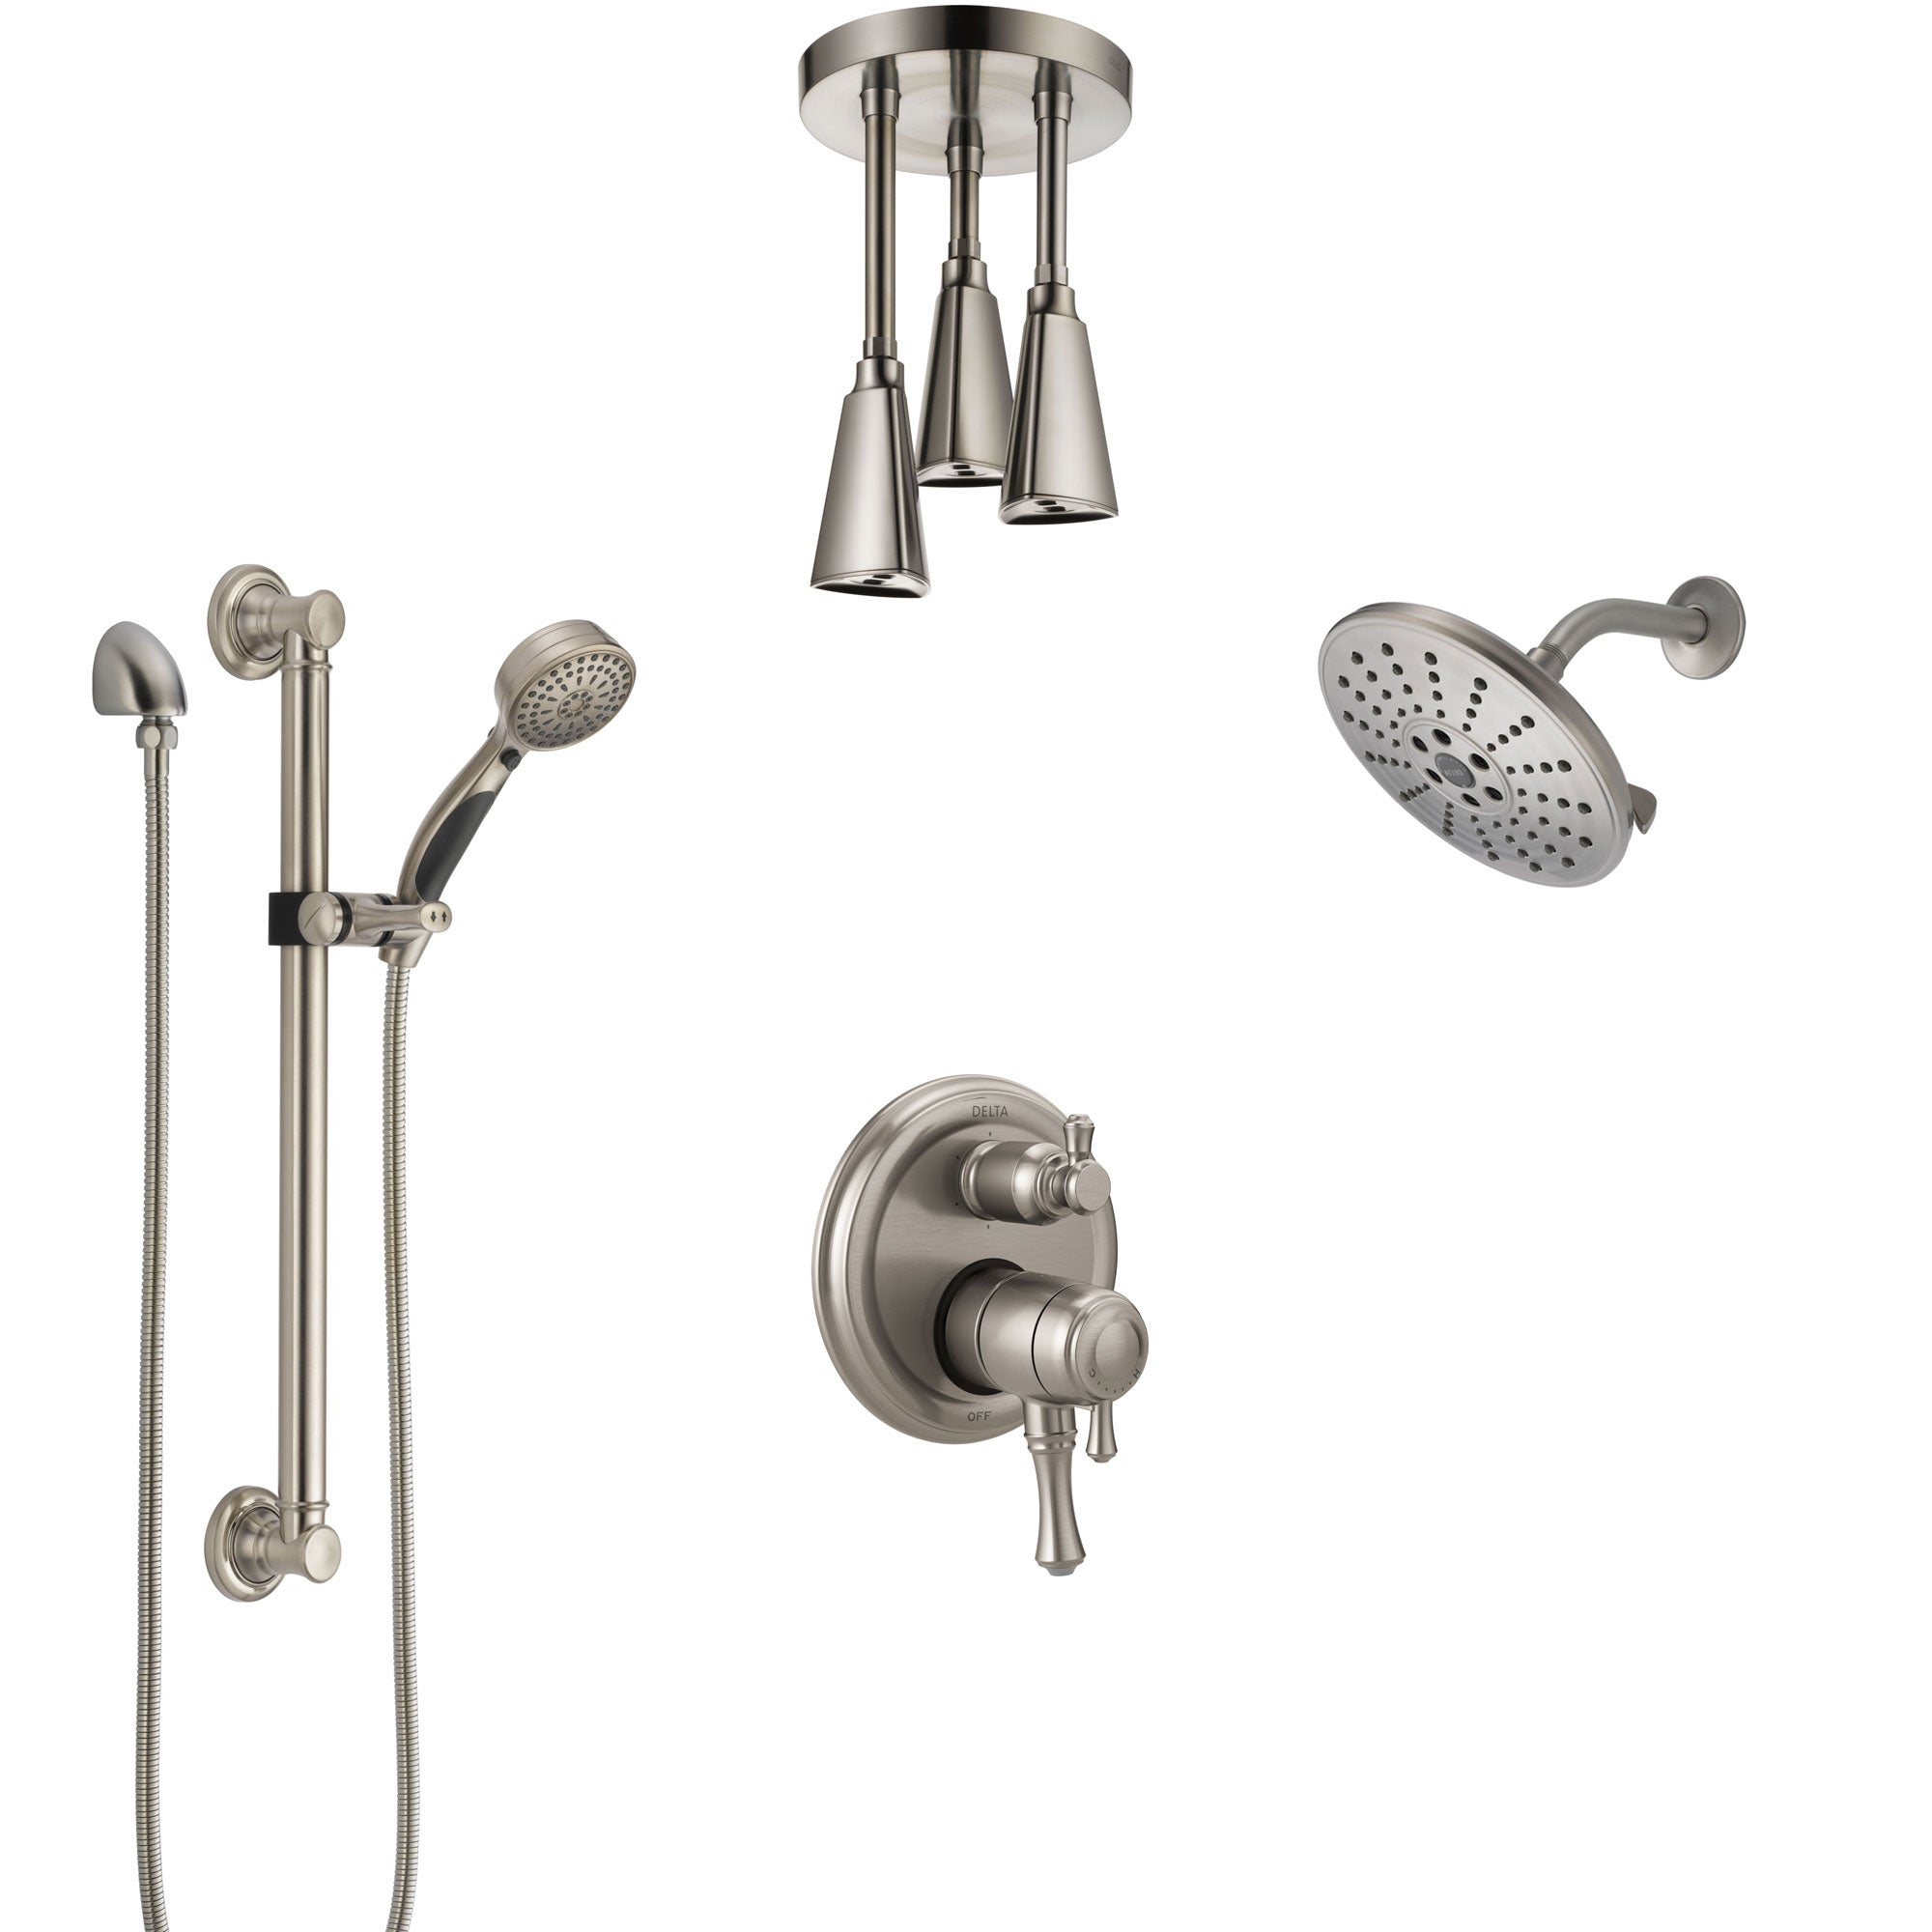 Delta Cassidy Dual Control Handle Stainless Steel Finish Shower System, Showerhead, Ceiling Showerhead, Grab Bar Hand Spray SS27997SS7